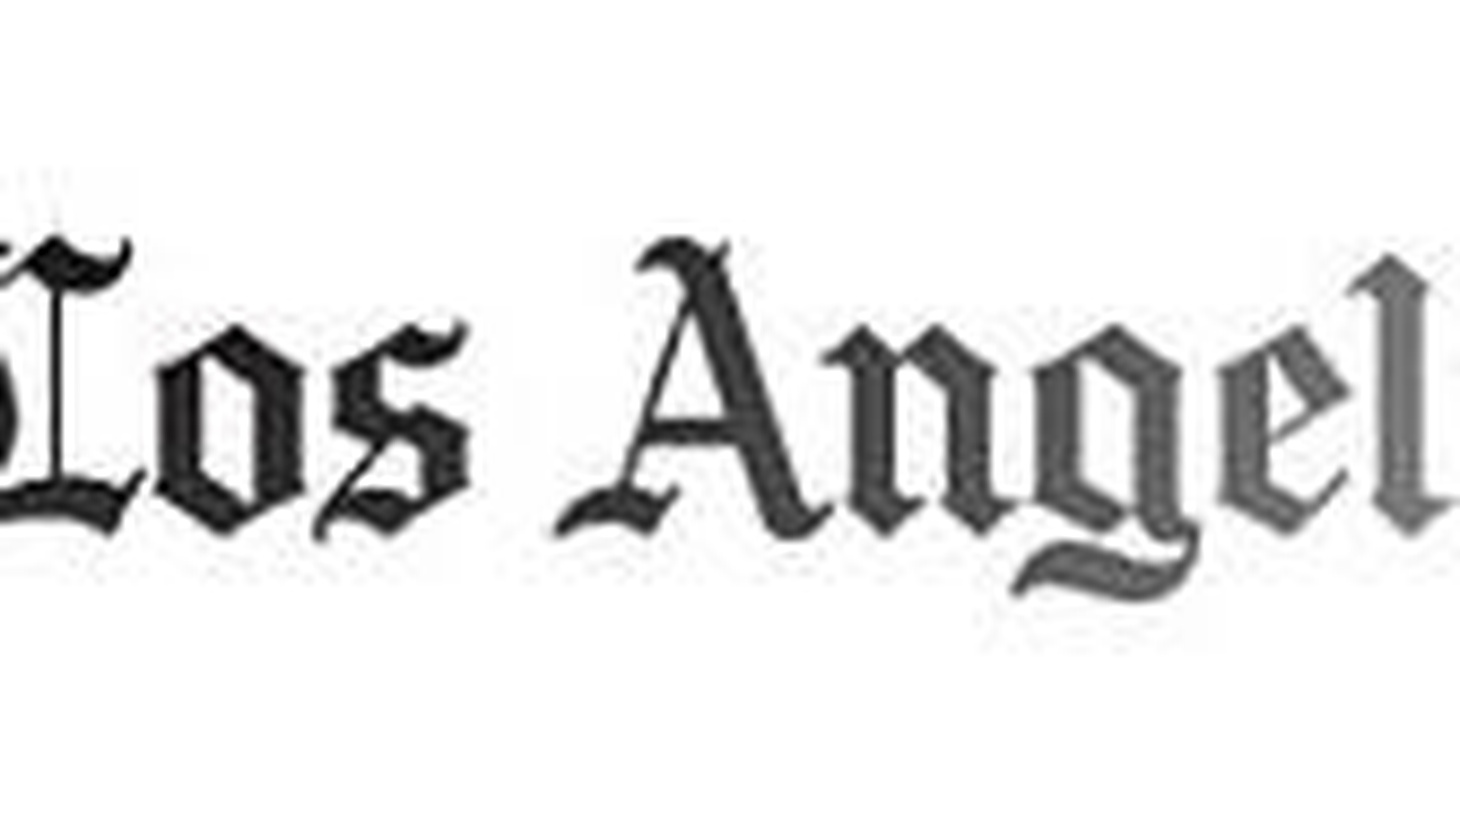 Los Angeles Times Publisher Jeff Johnson and Editor Dean Baquet have made news by publicly challenging their bosses at Tribune Publishing in Chicago. Almost half the Times' staff has lined up to support the executives.